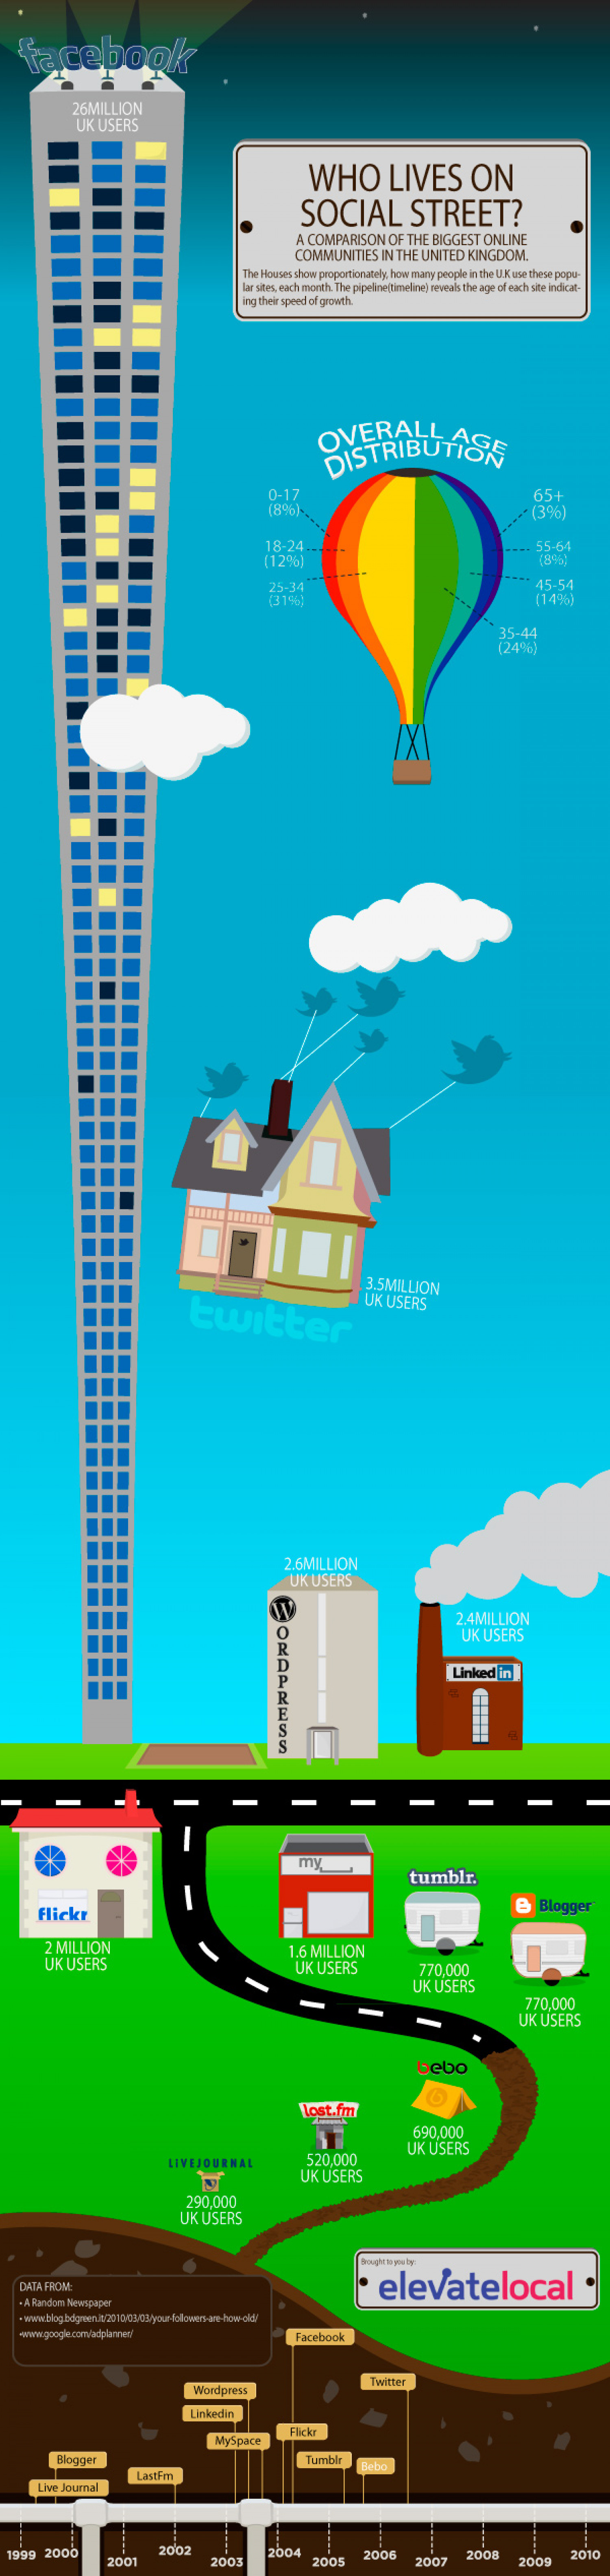 Who lives on Social Street? [ Infographic